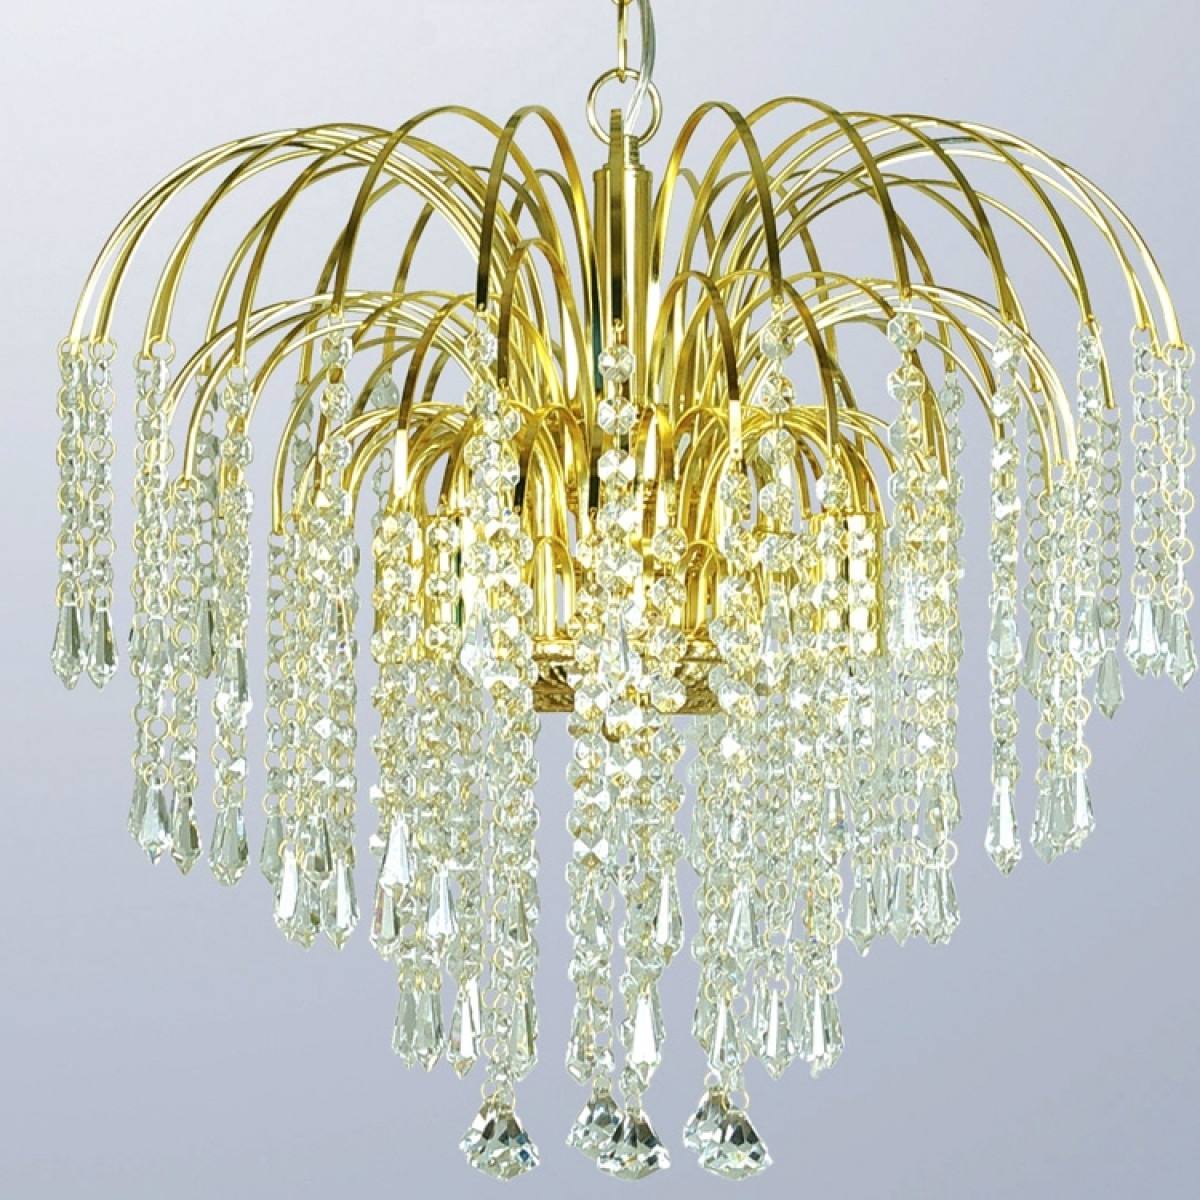 Waterfall Chandeliers For Well Known Waterfall Four Light Gold Crystal Chandelier (View 11 of 15)